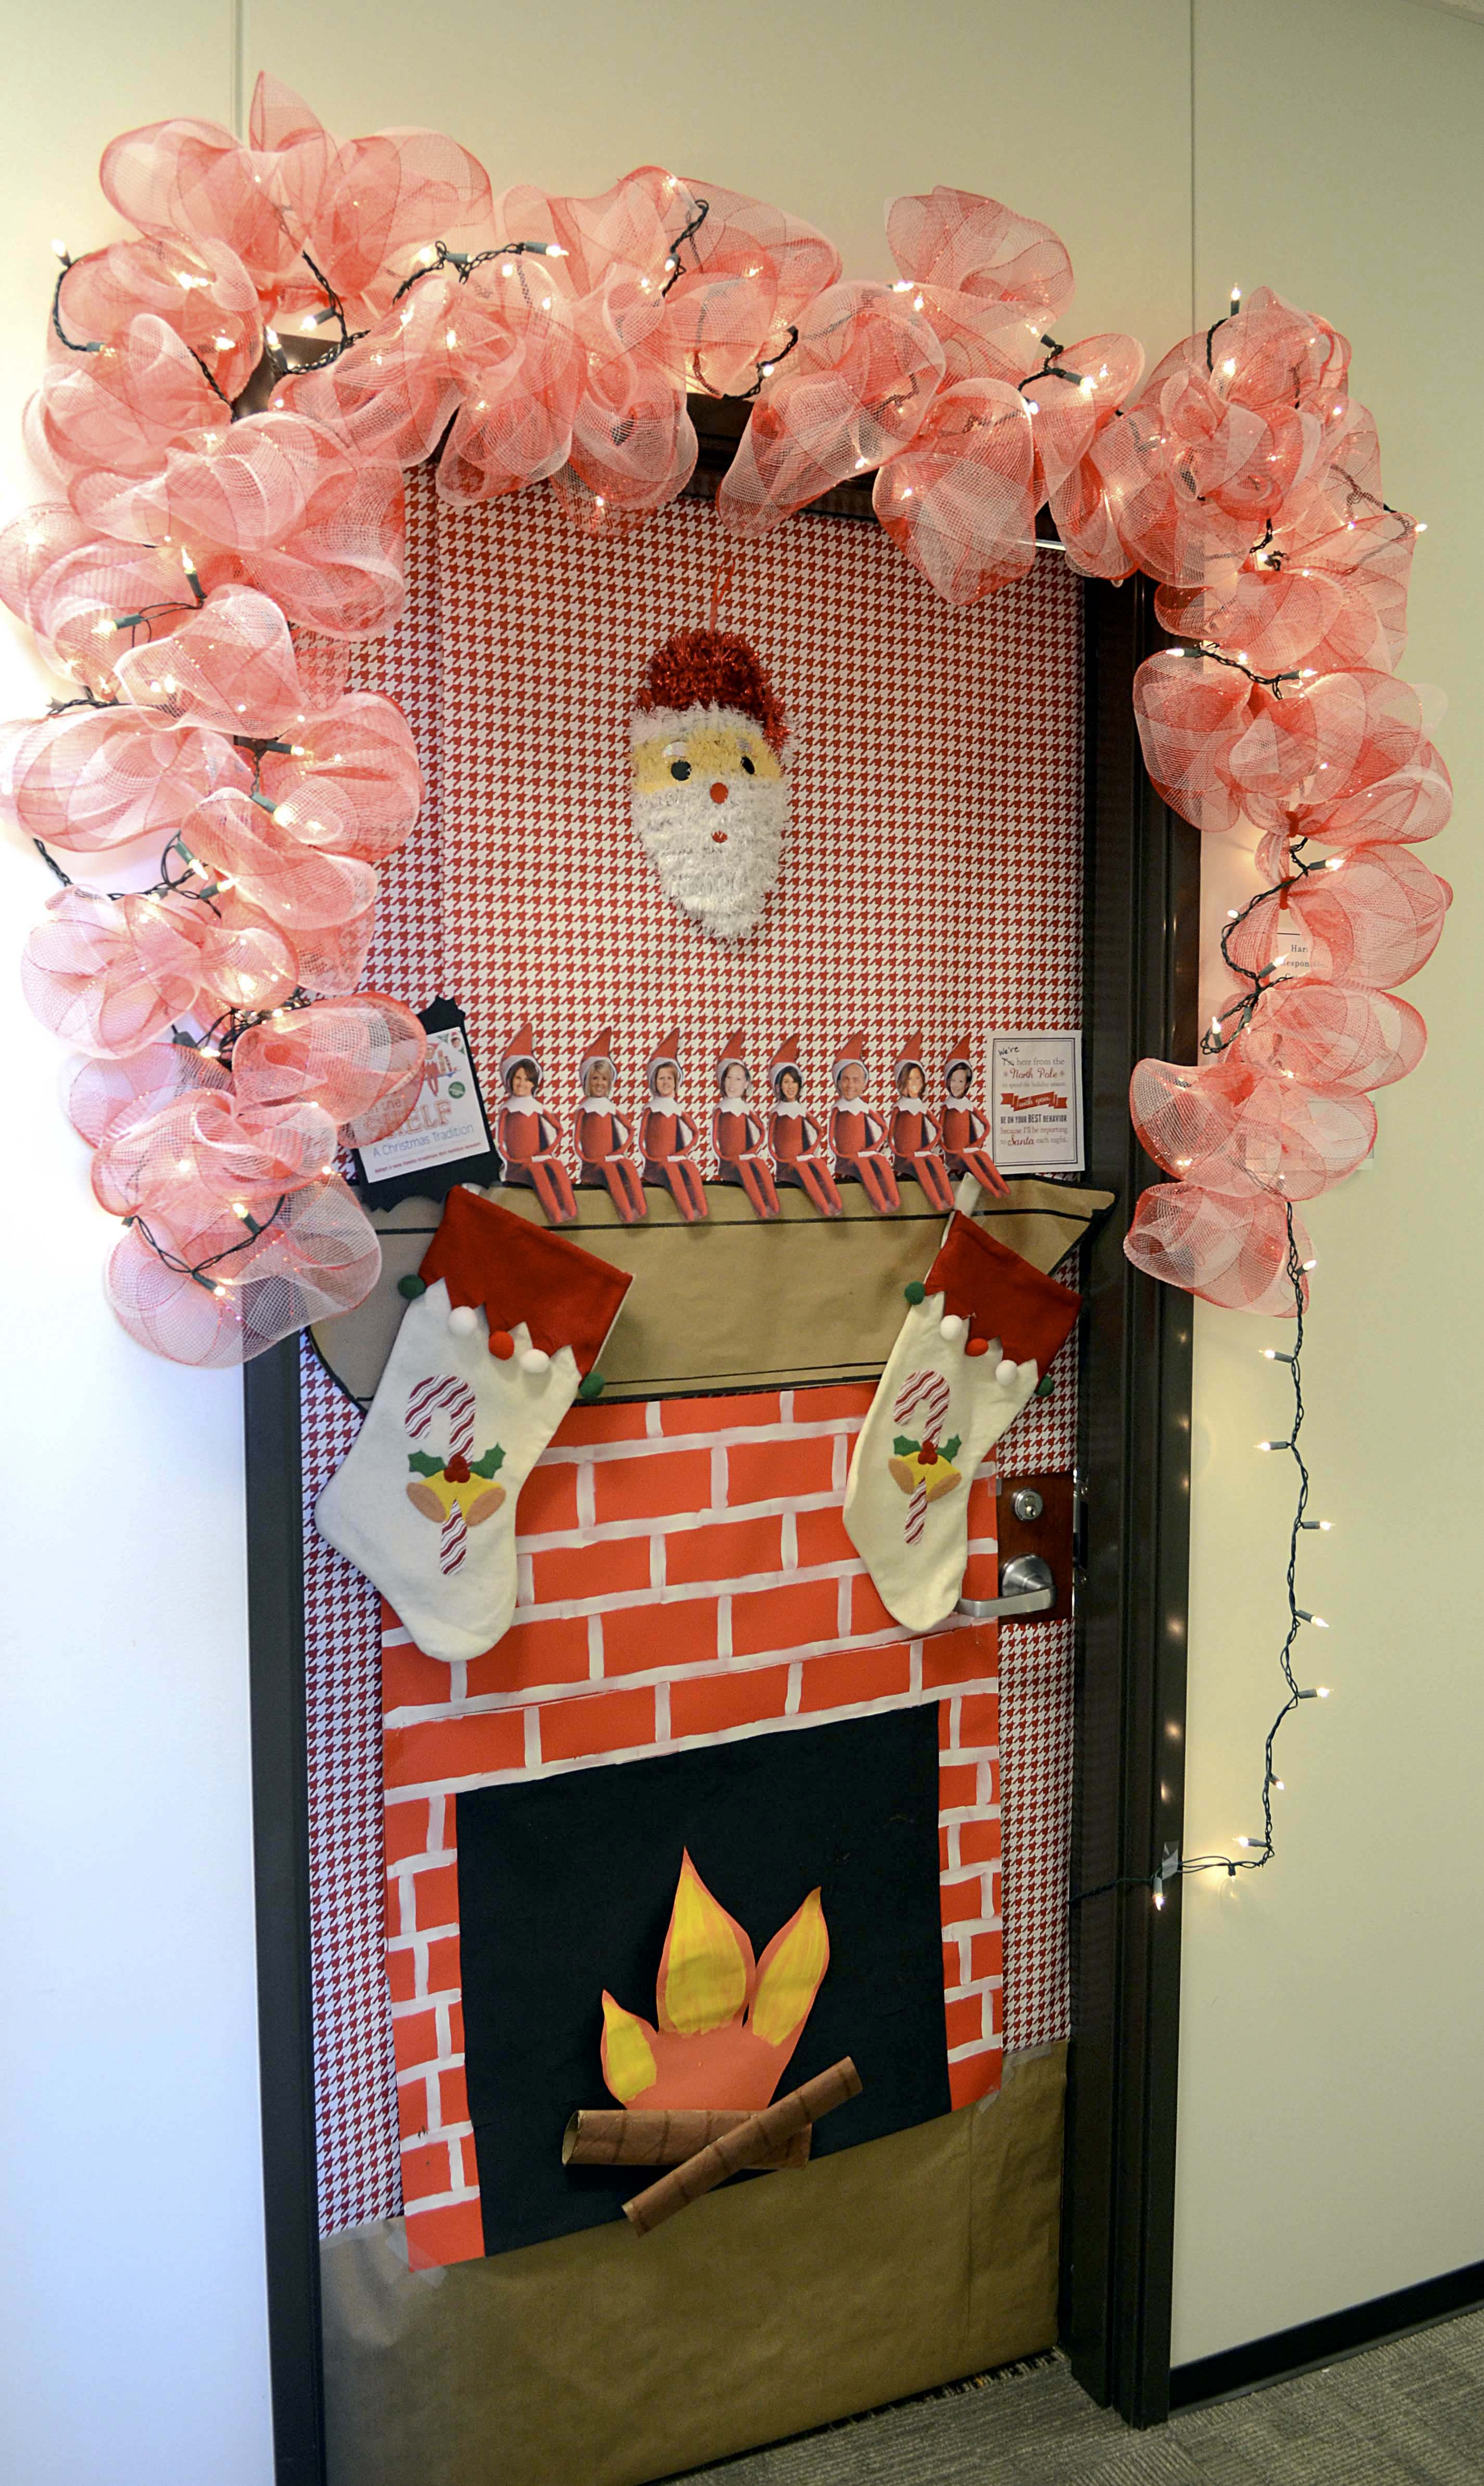 this is a photo of a decorated door